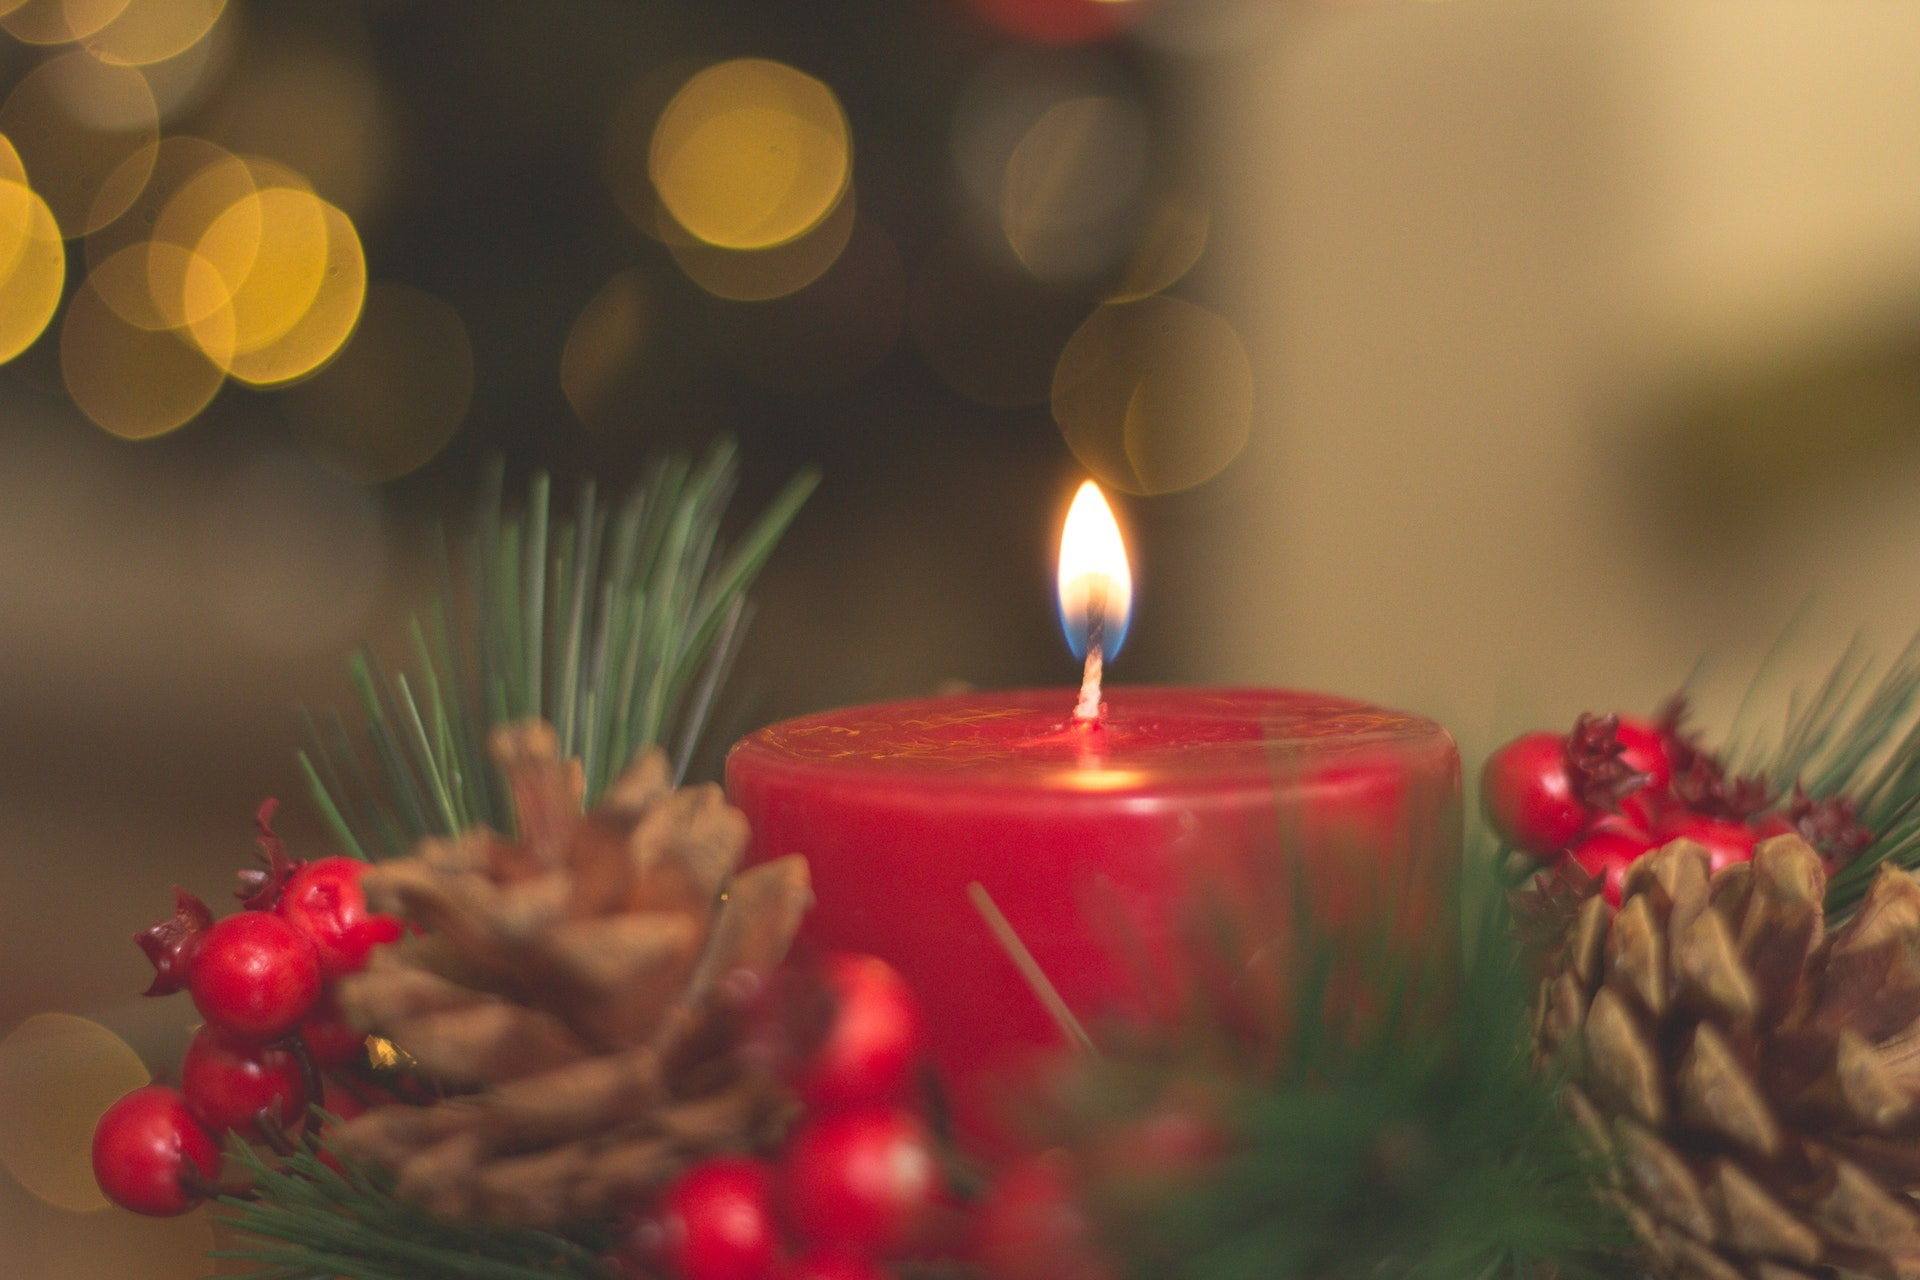 5 Must-Know Holiday Home Safety Tips